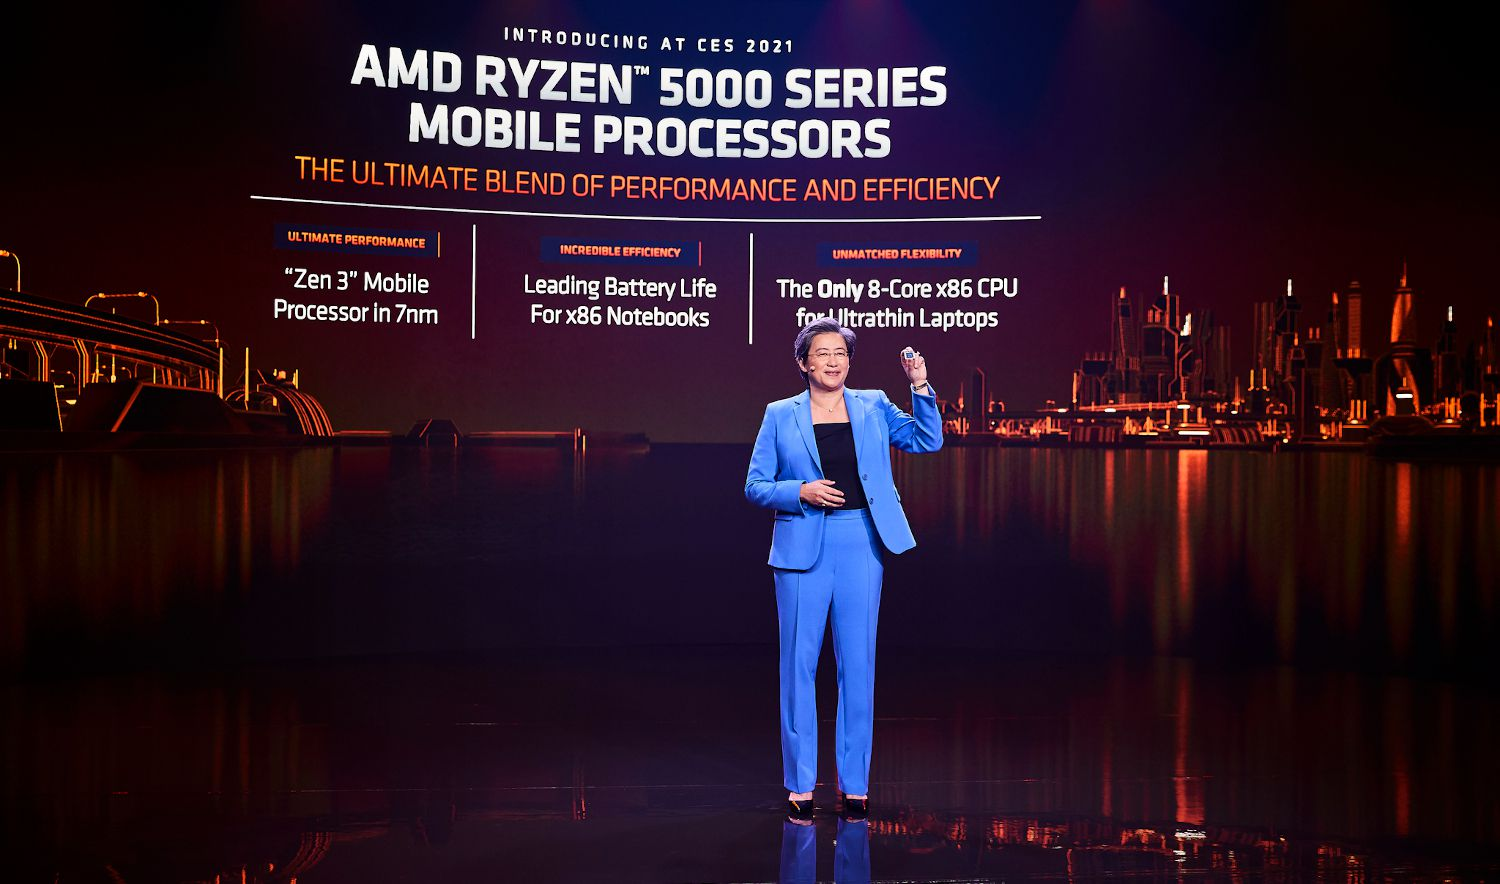 AMD CEO Dr. Lisa Su on stage at CES 2021